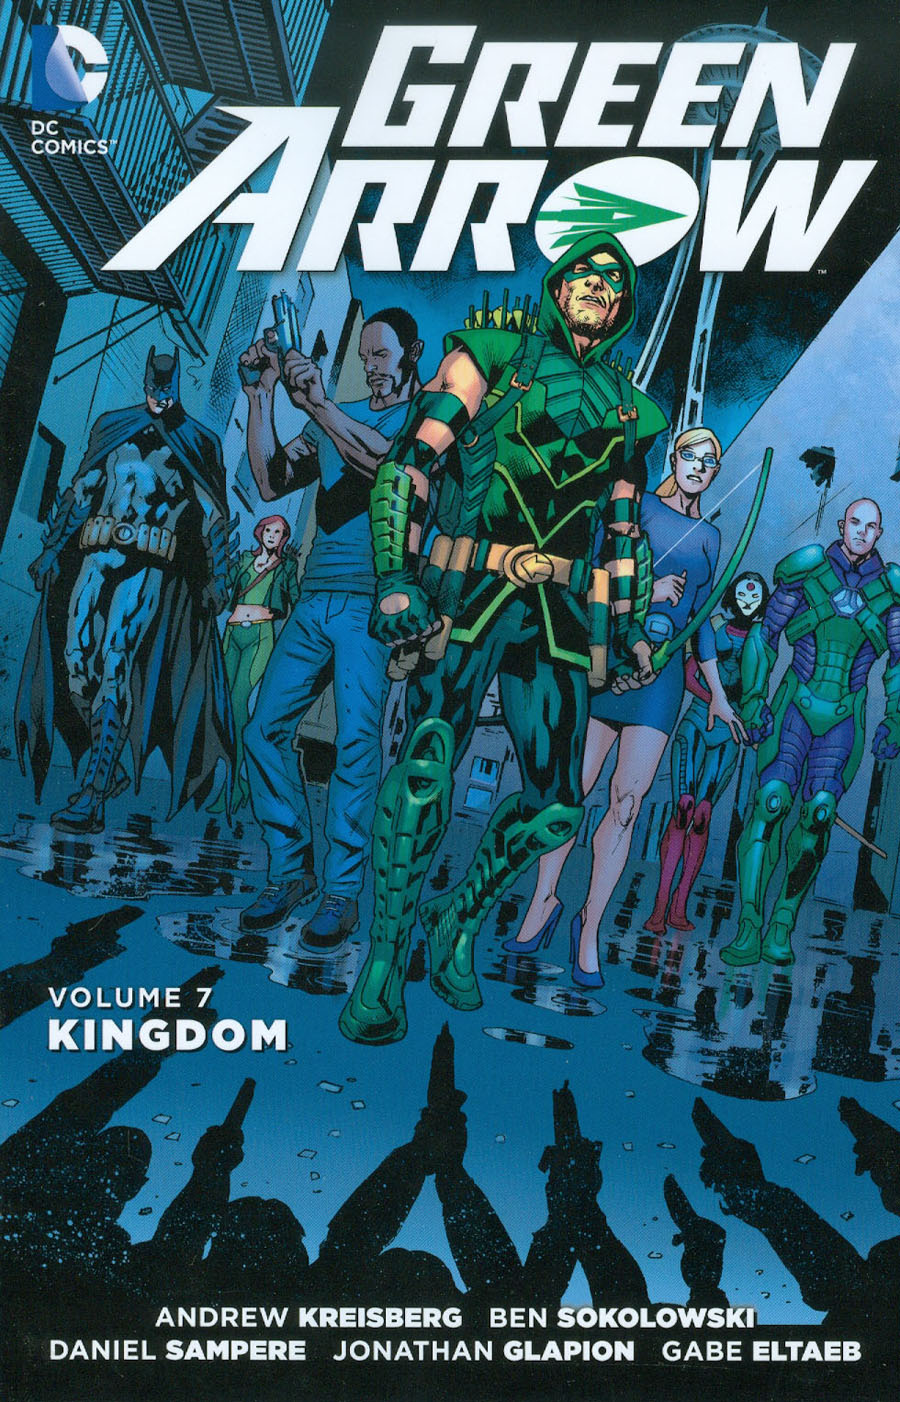 Green Arrow (New 52) Vol 7 Kingdom TP